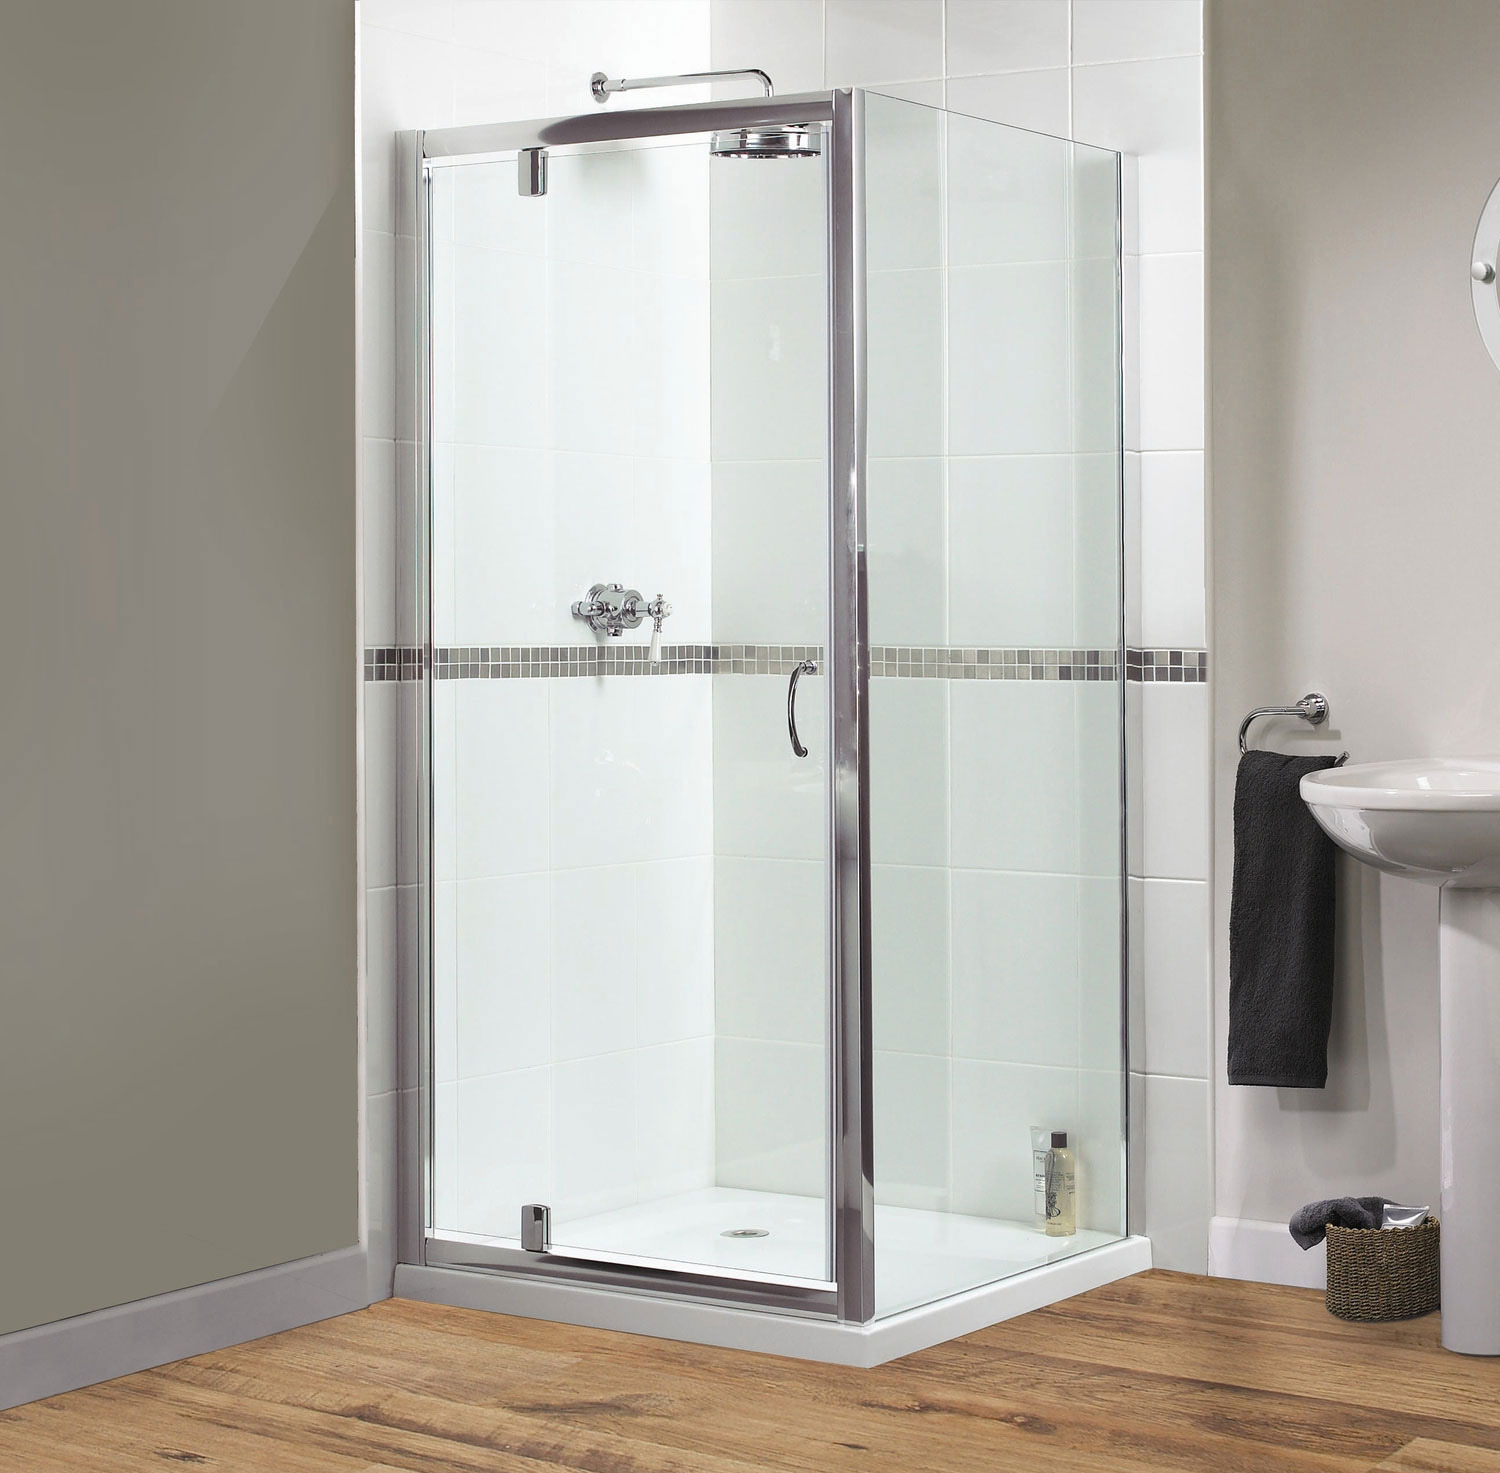 Aqualux Shine Pivot Shower Door 760mm Polished Silver Fen0895aqu